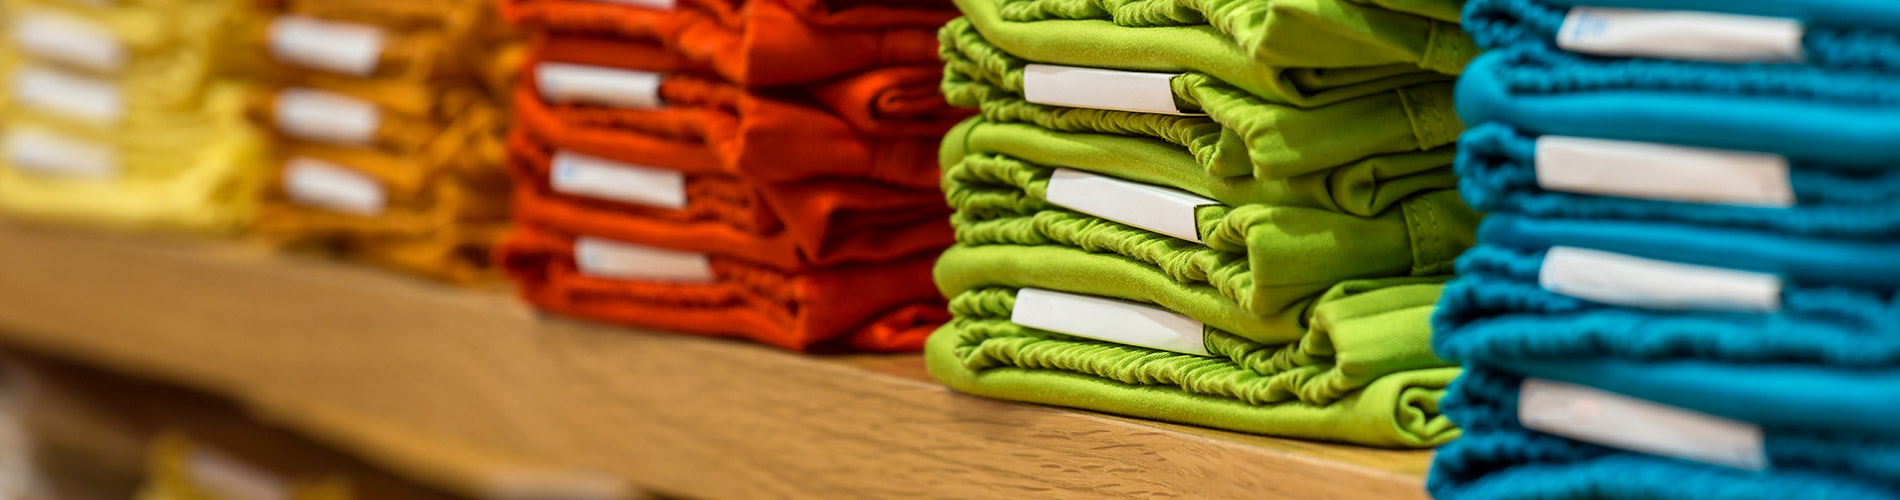 label-markets-retail-labels-clothes-folded-shirts-colors-table-dls